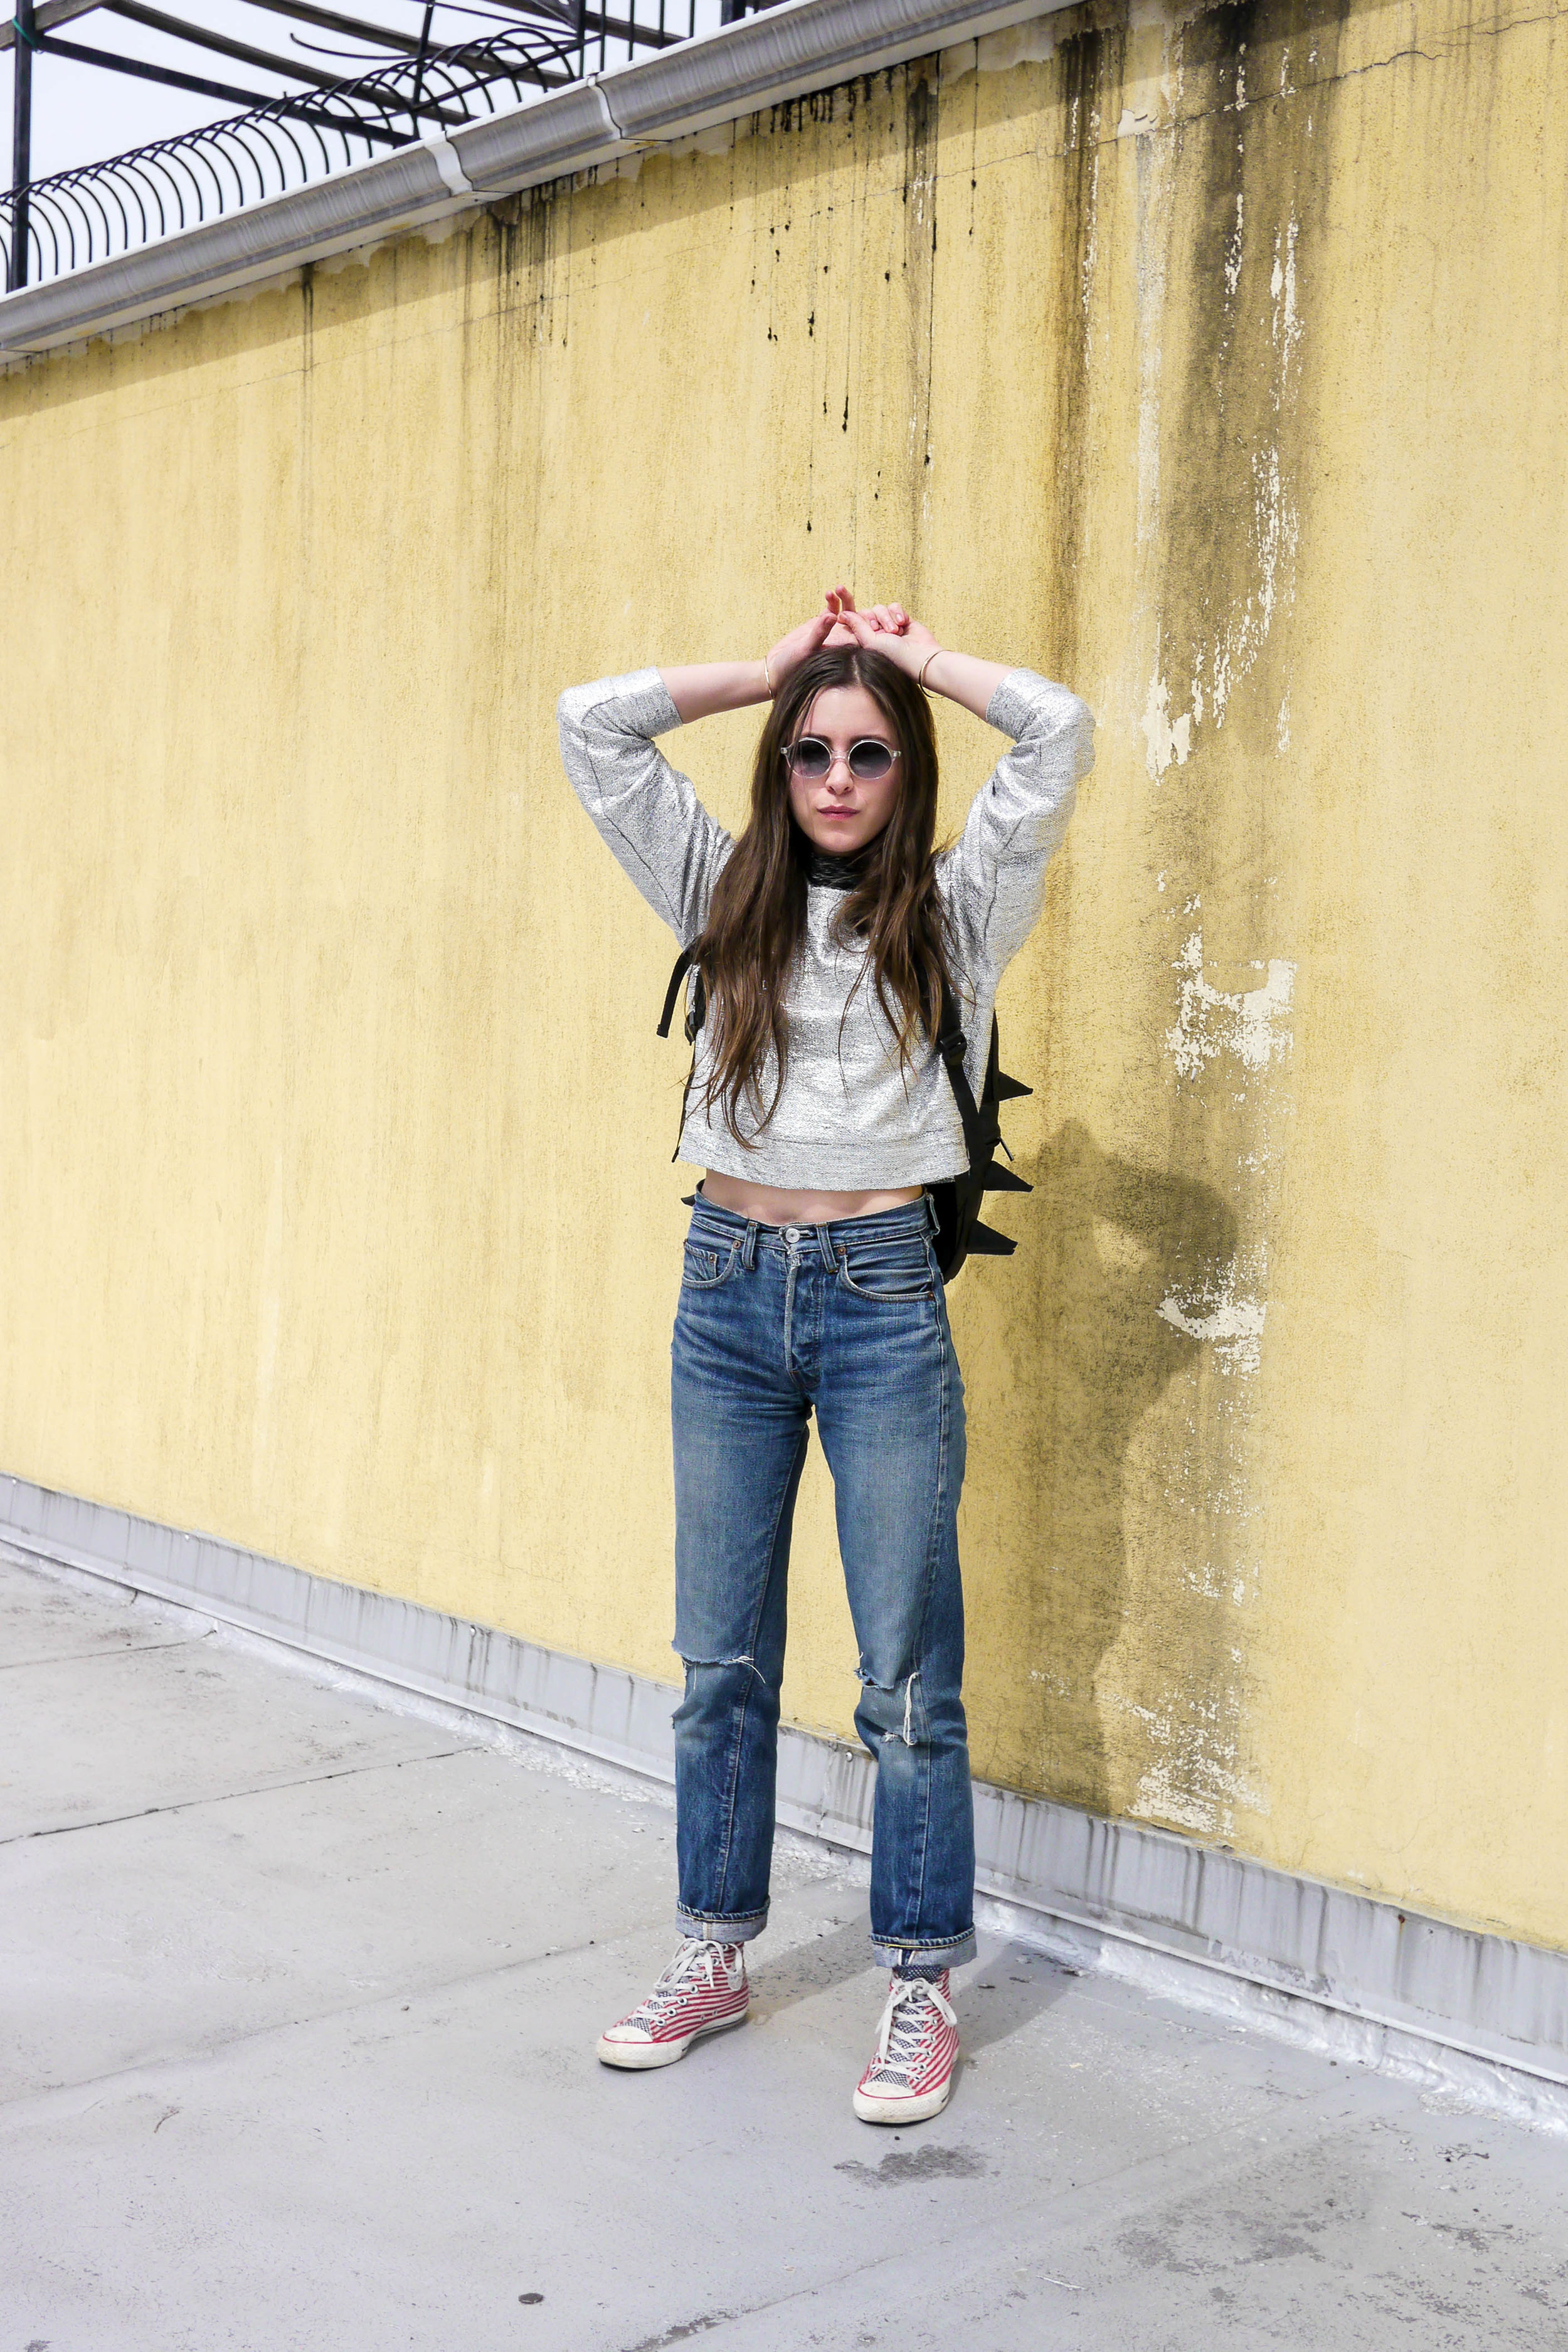 Top, Outdoor Voices    ;    Sweatshirt, Samuji    ;    Jeans, LEvi's    ;    Shoes, Converse    ;    Backpack, Madpax    ;    Sunglasses, Warby Parker